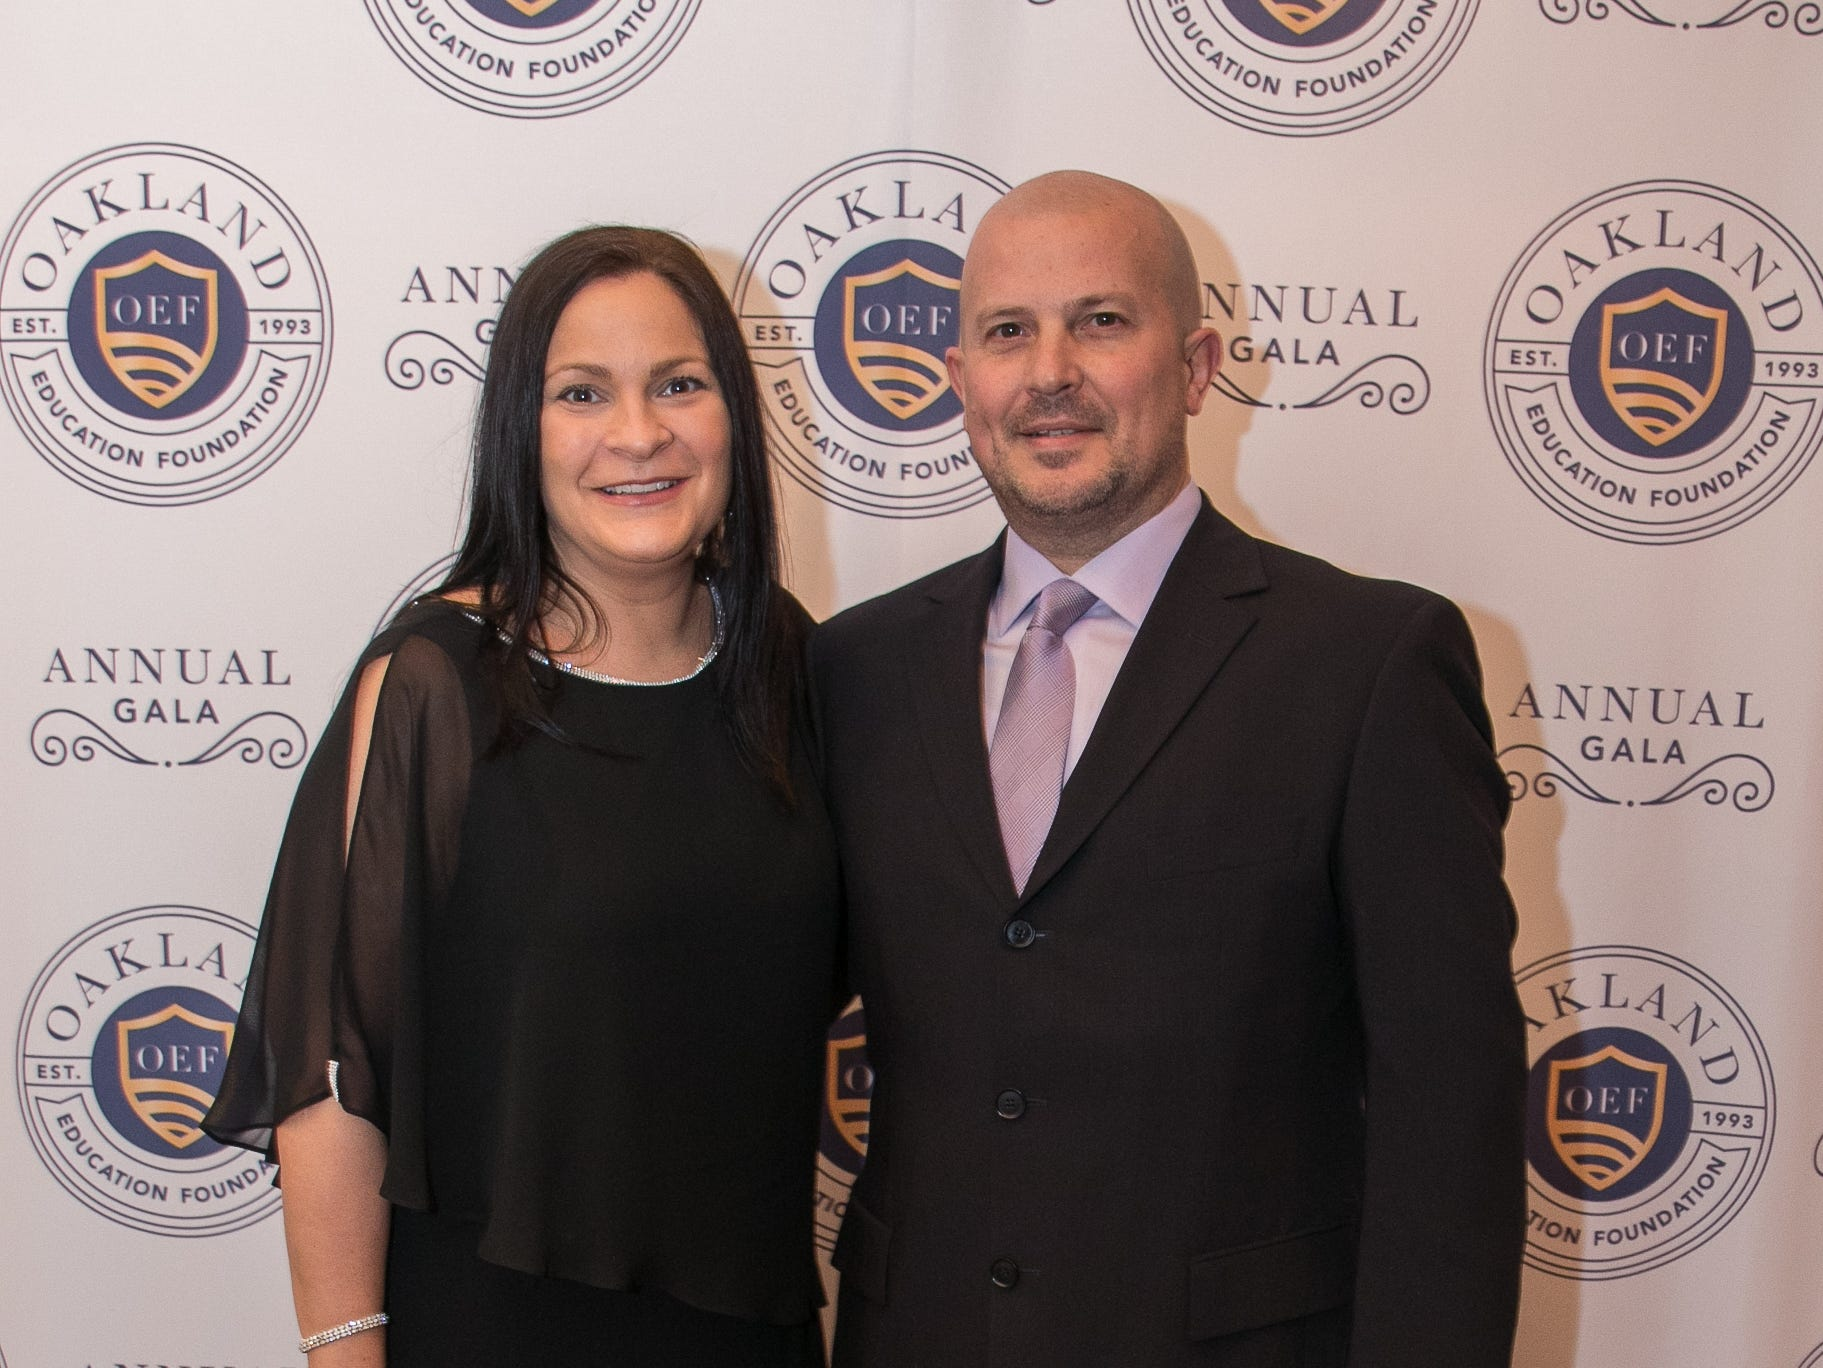 Sandra and Spencer Taltavoll. The Oakland Education Foundation held their 25th Anniversary Casino Night Gala at Preakness Hills Country Club in Wayne. 03/16/2019